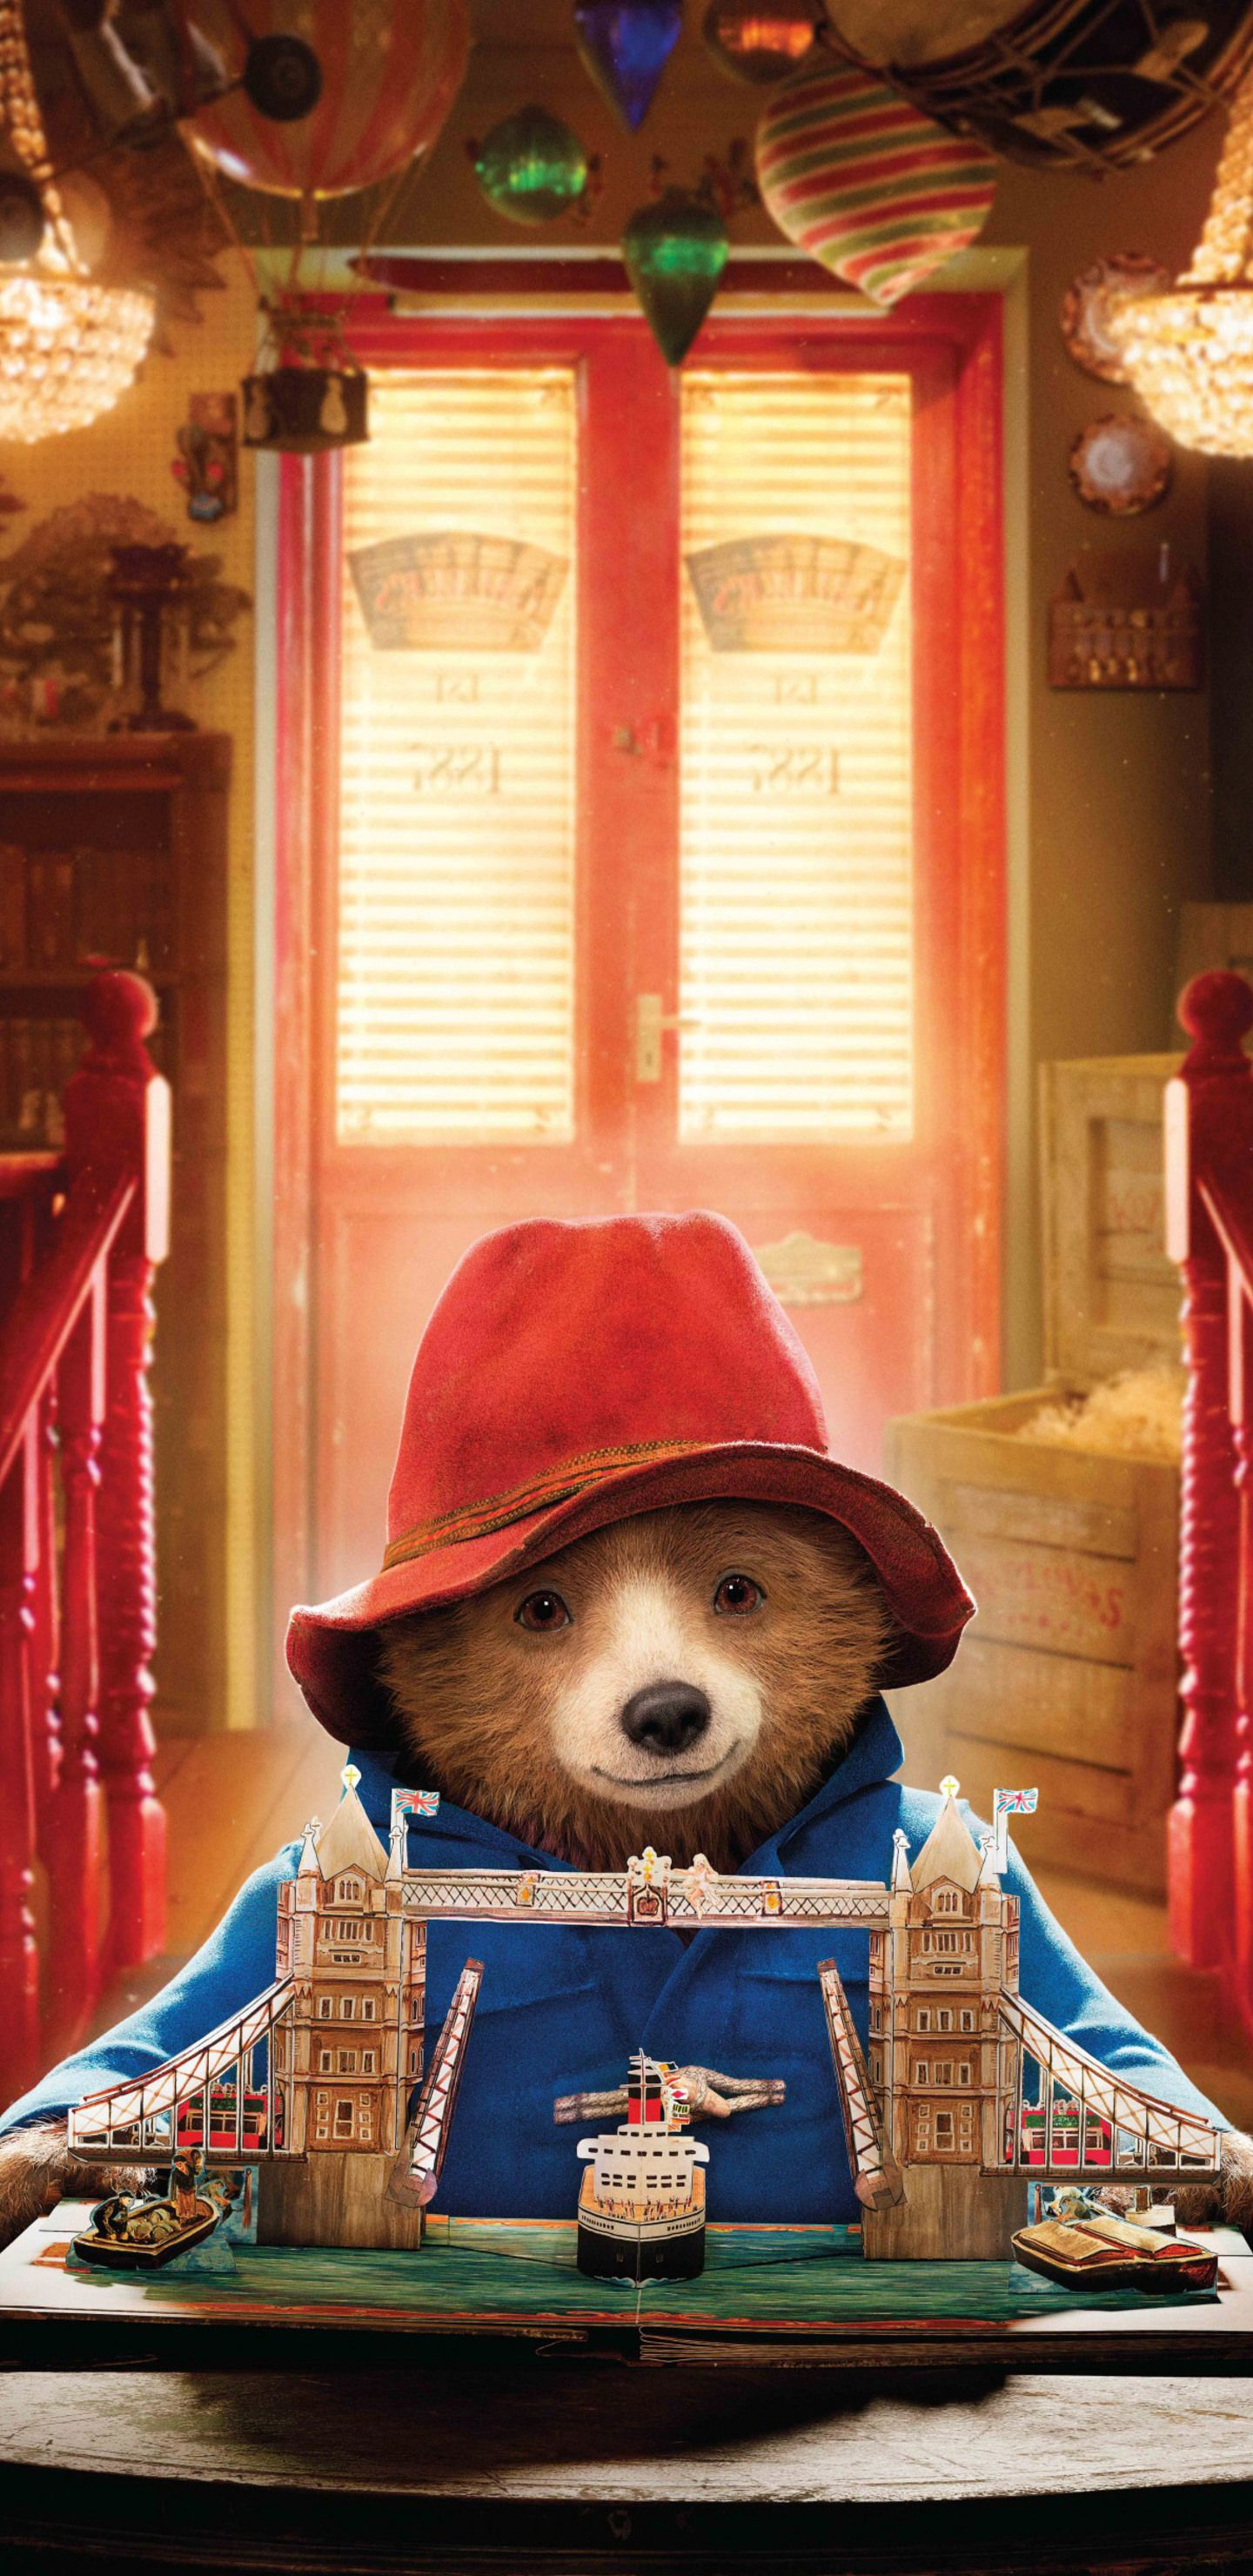 1440x2960 Paddington 2 Samsung Galaxy S8,S8+ ,Note 8 QHD HD 4k ...